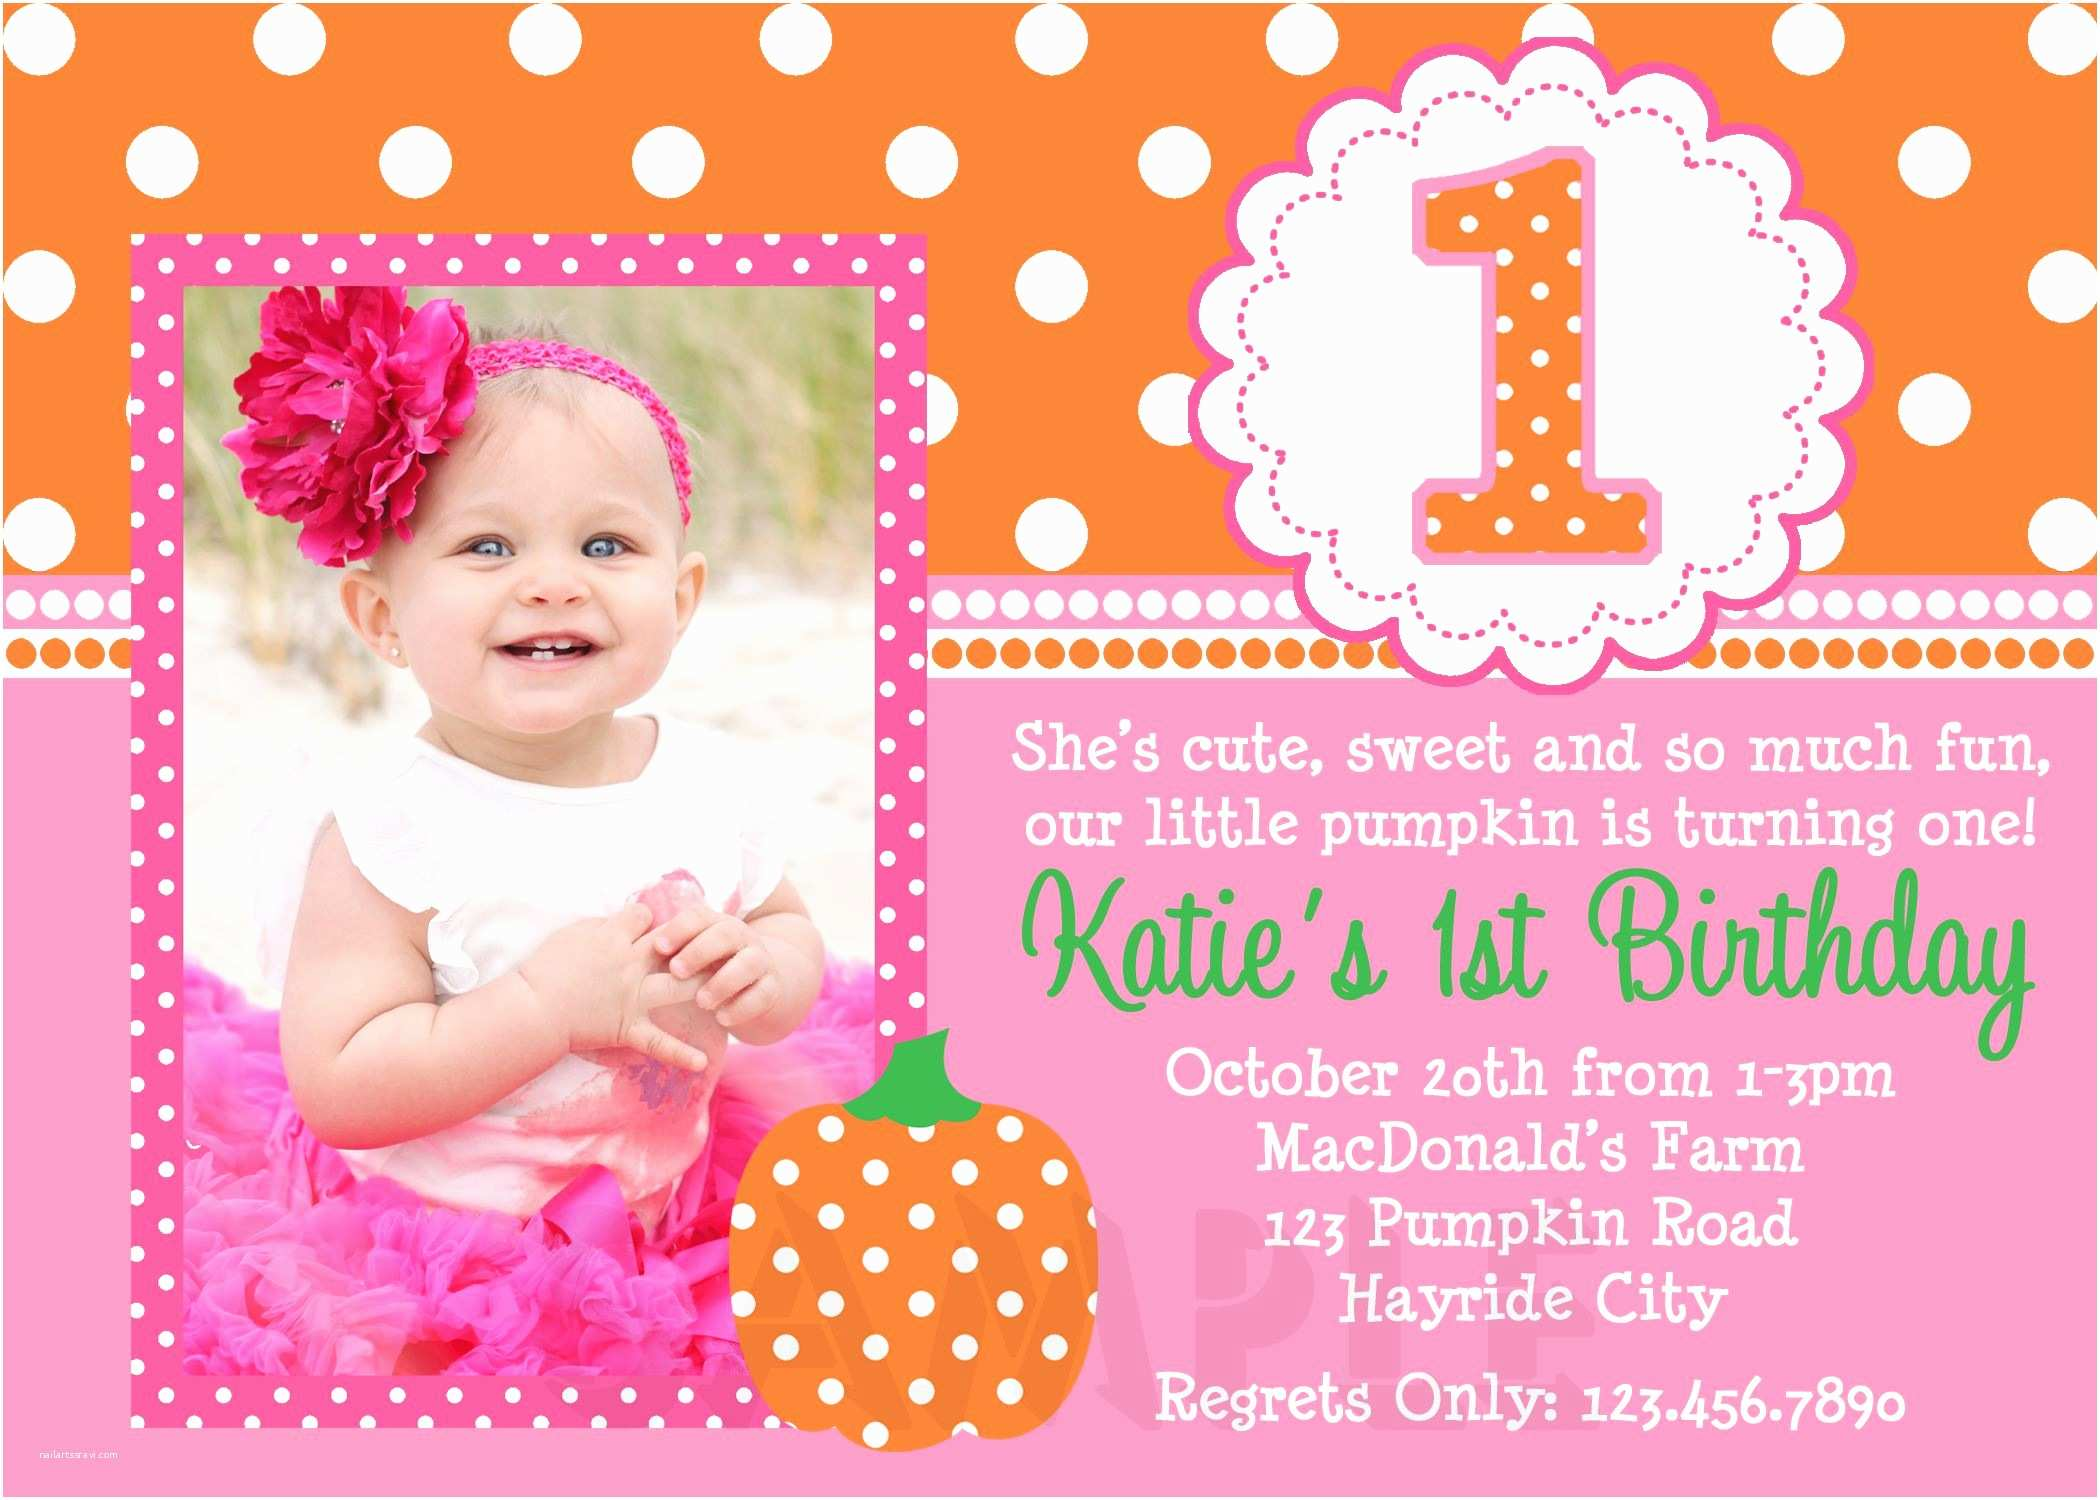 Birthday Invitation Cards Birthday Invitation Cards Birthday Invitation Cards